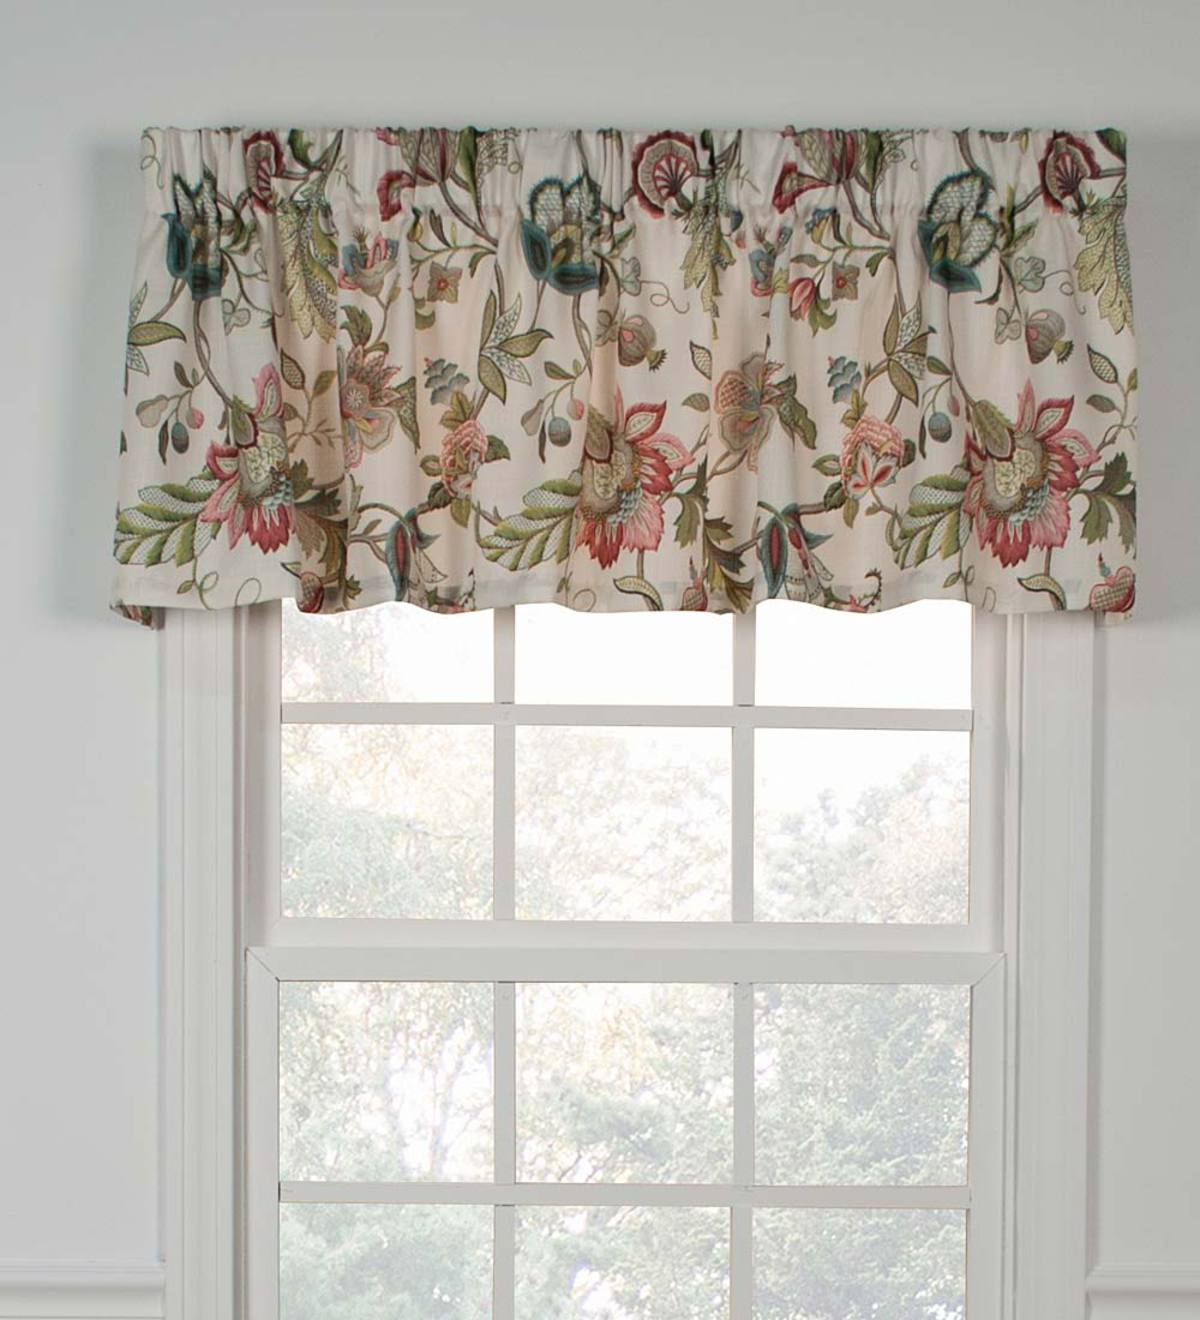 Brissac Jacobean Floral Print Window Valances